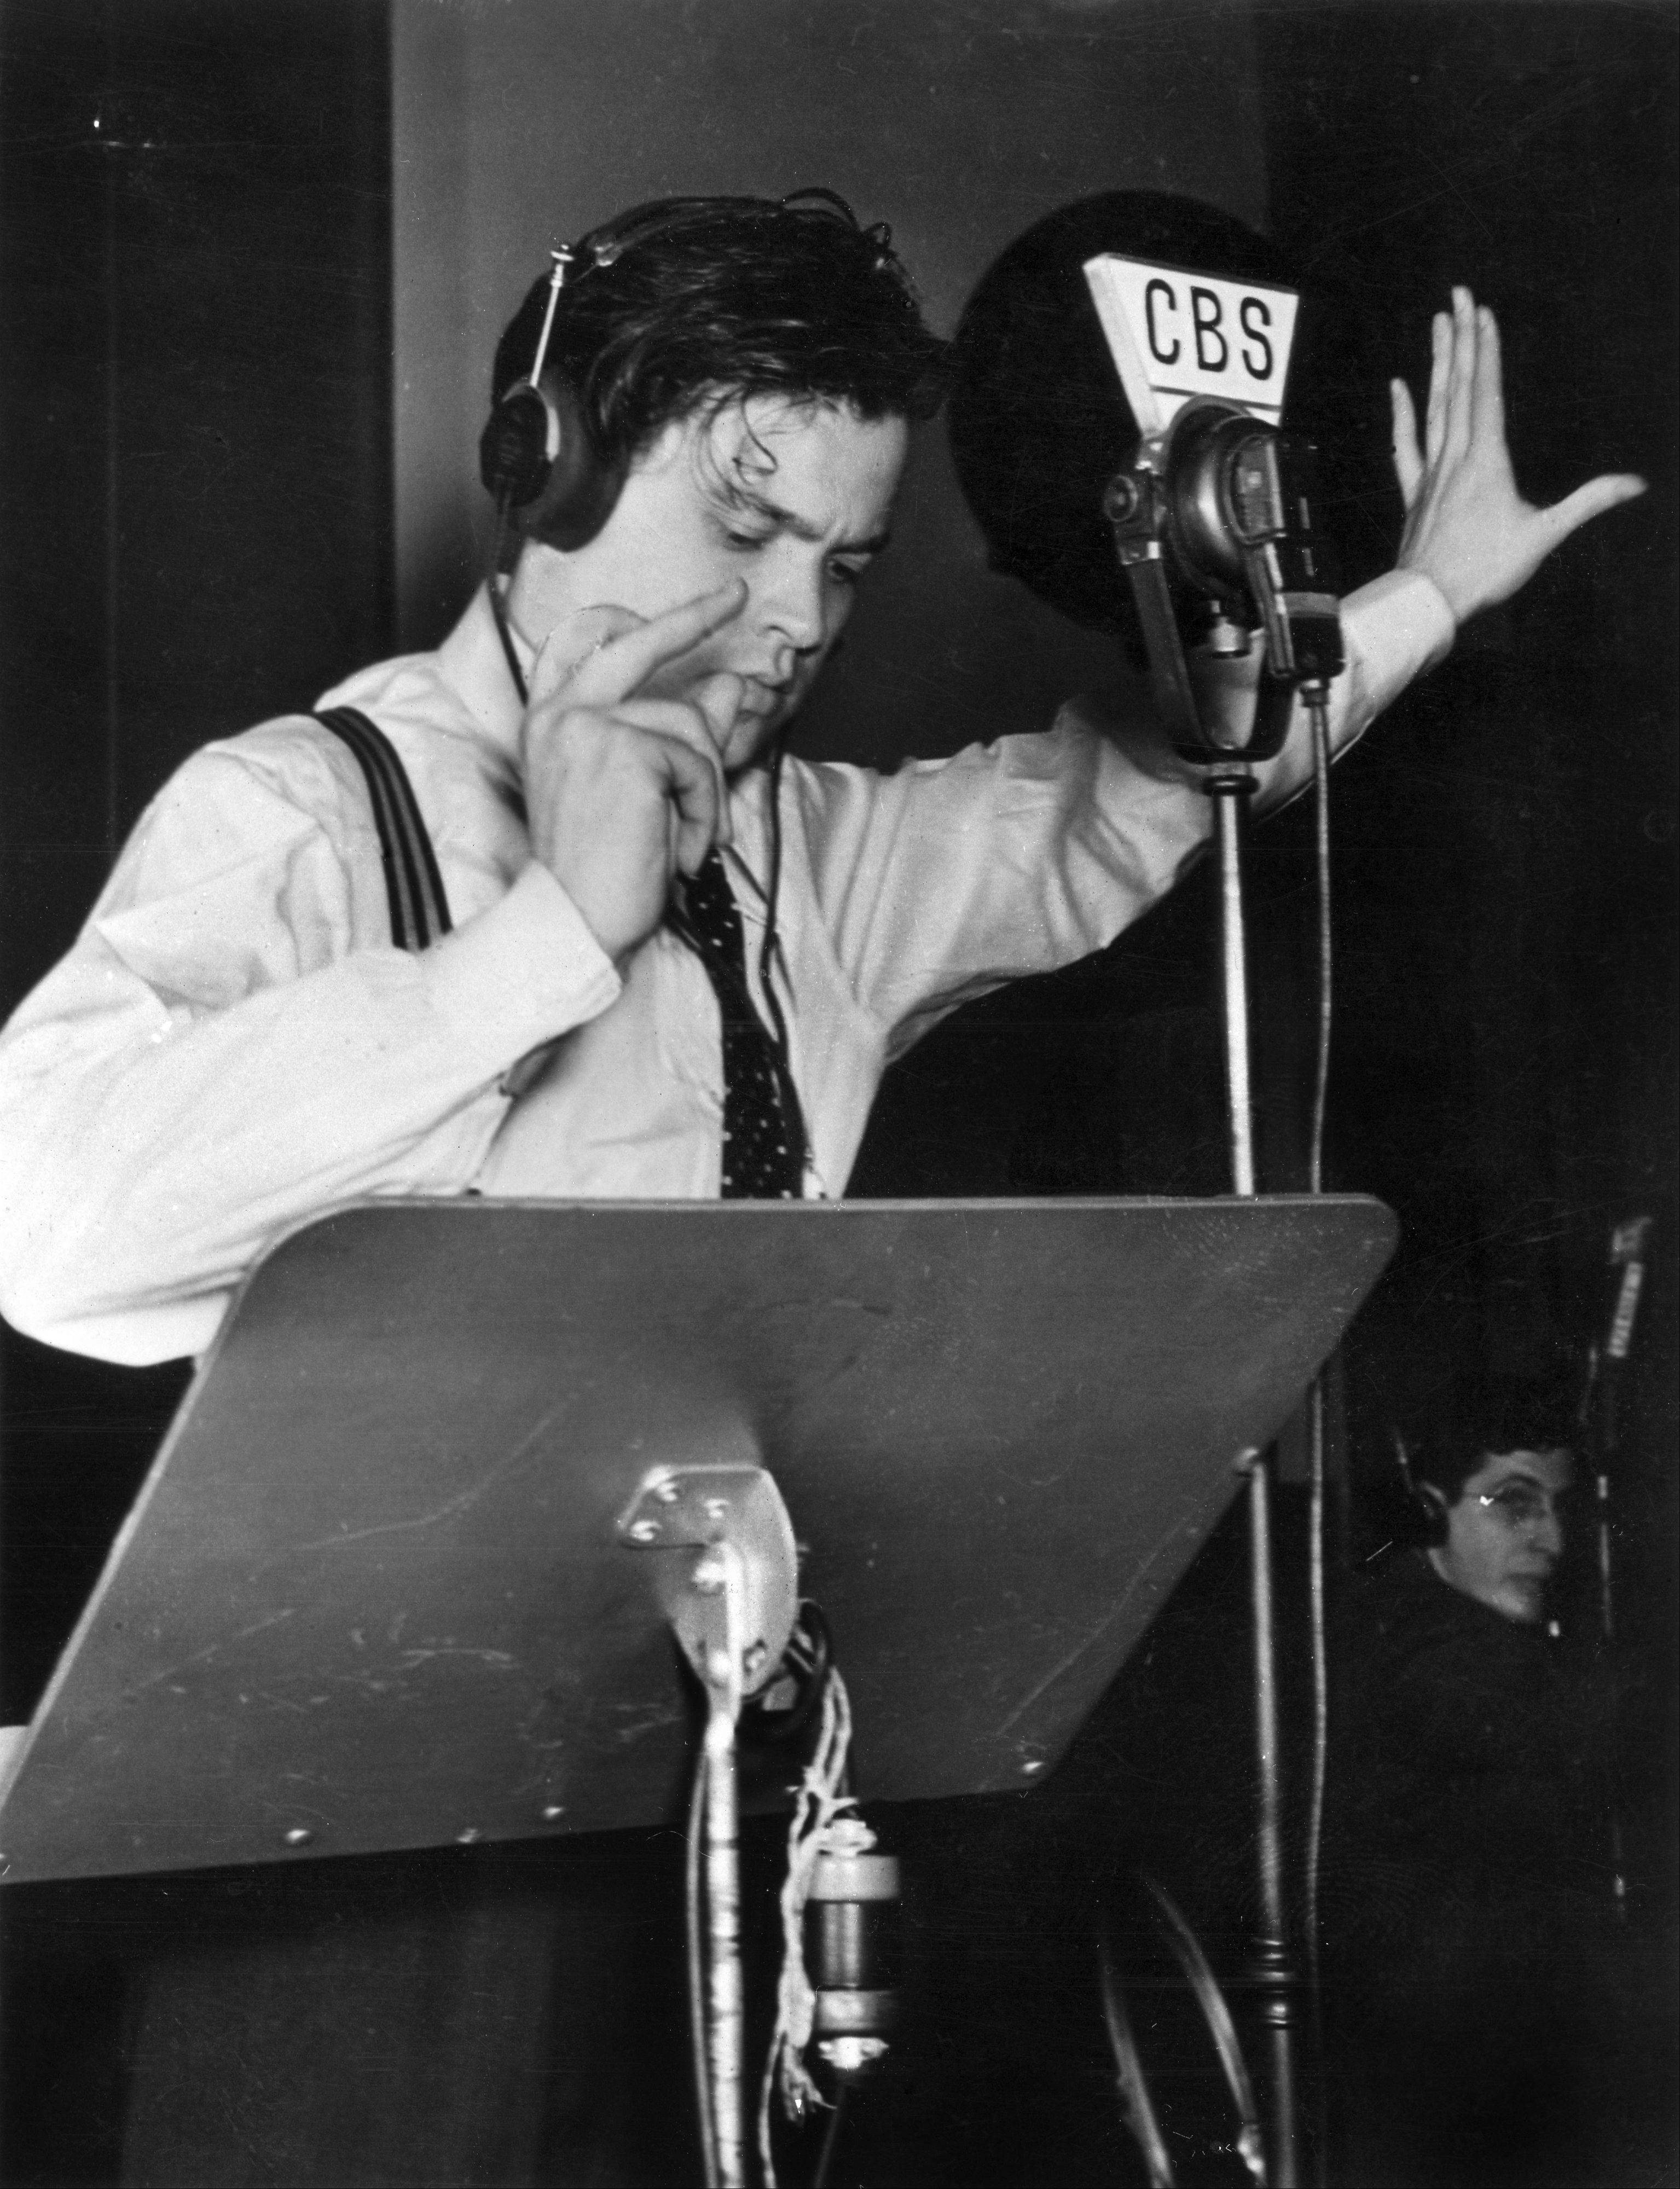 """American Experience"" marks the 75th anniversary of the CBS radio broadcast of ""The War of the Worlds"" by Orson Welles. The ""Mercury Theatre on the Air"" adaptation of the H.G. Wells science-fiction novel had many listeners in a panic thinking they were listening to a real news broadcast."